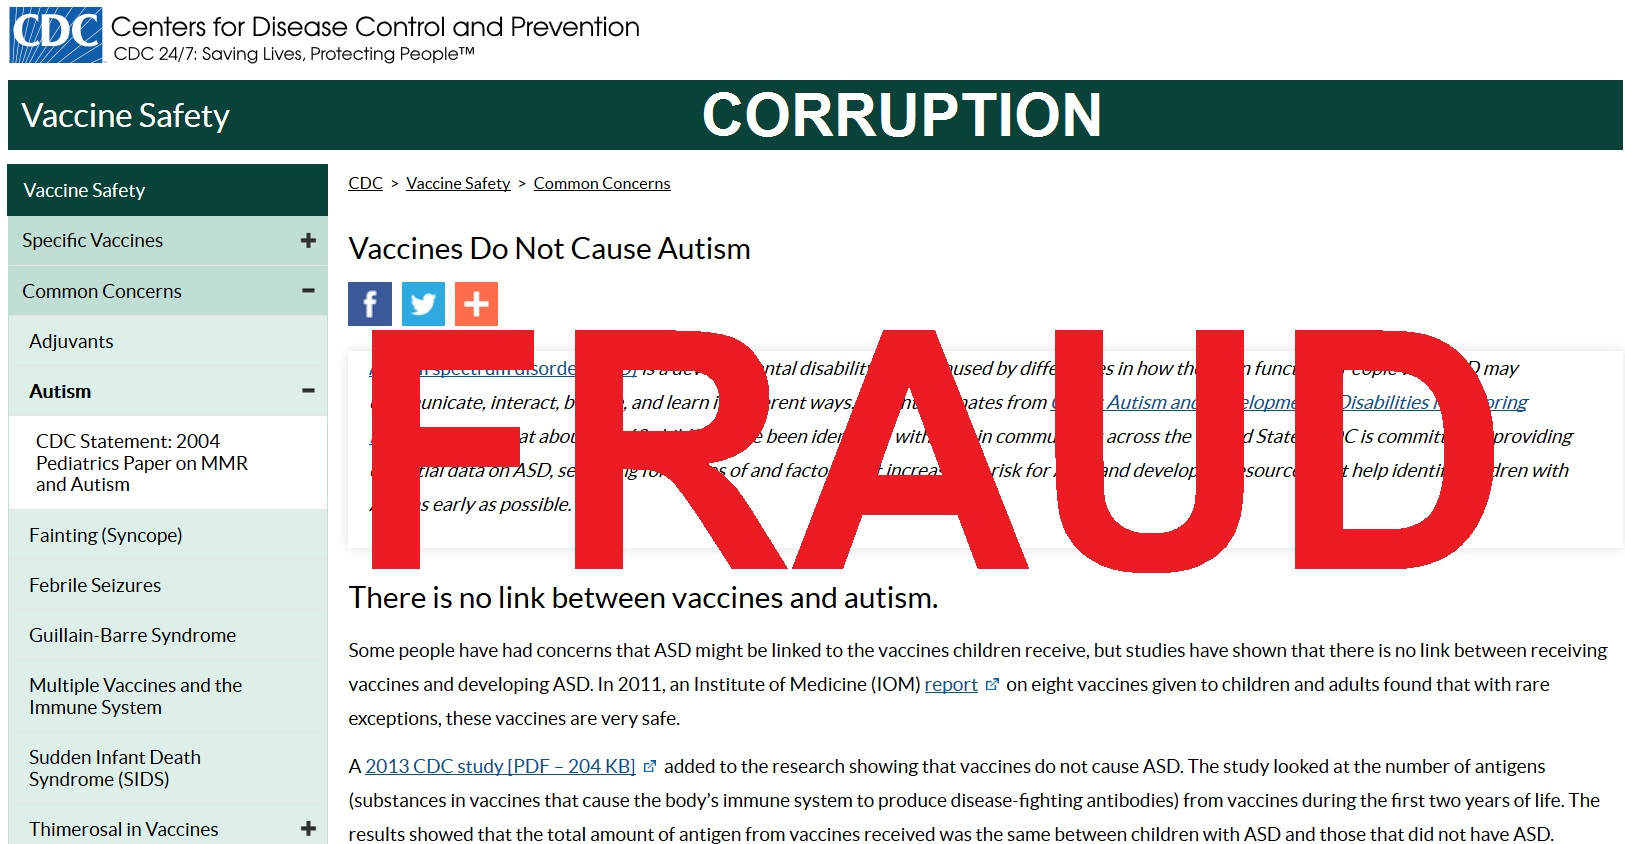 018 Fraud Corruption Research Paper Marvelous Vaccine Titles Polio Full